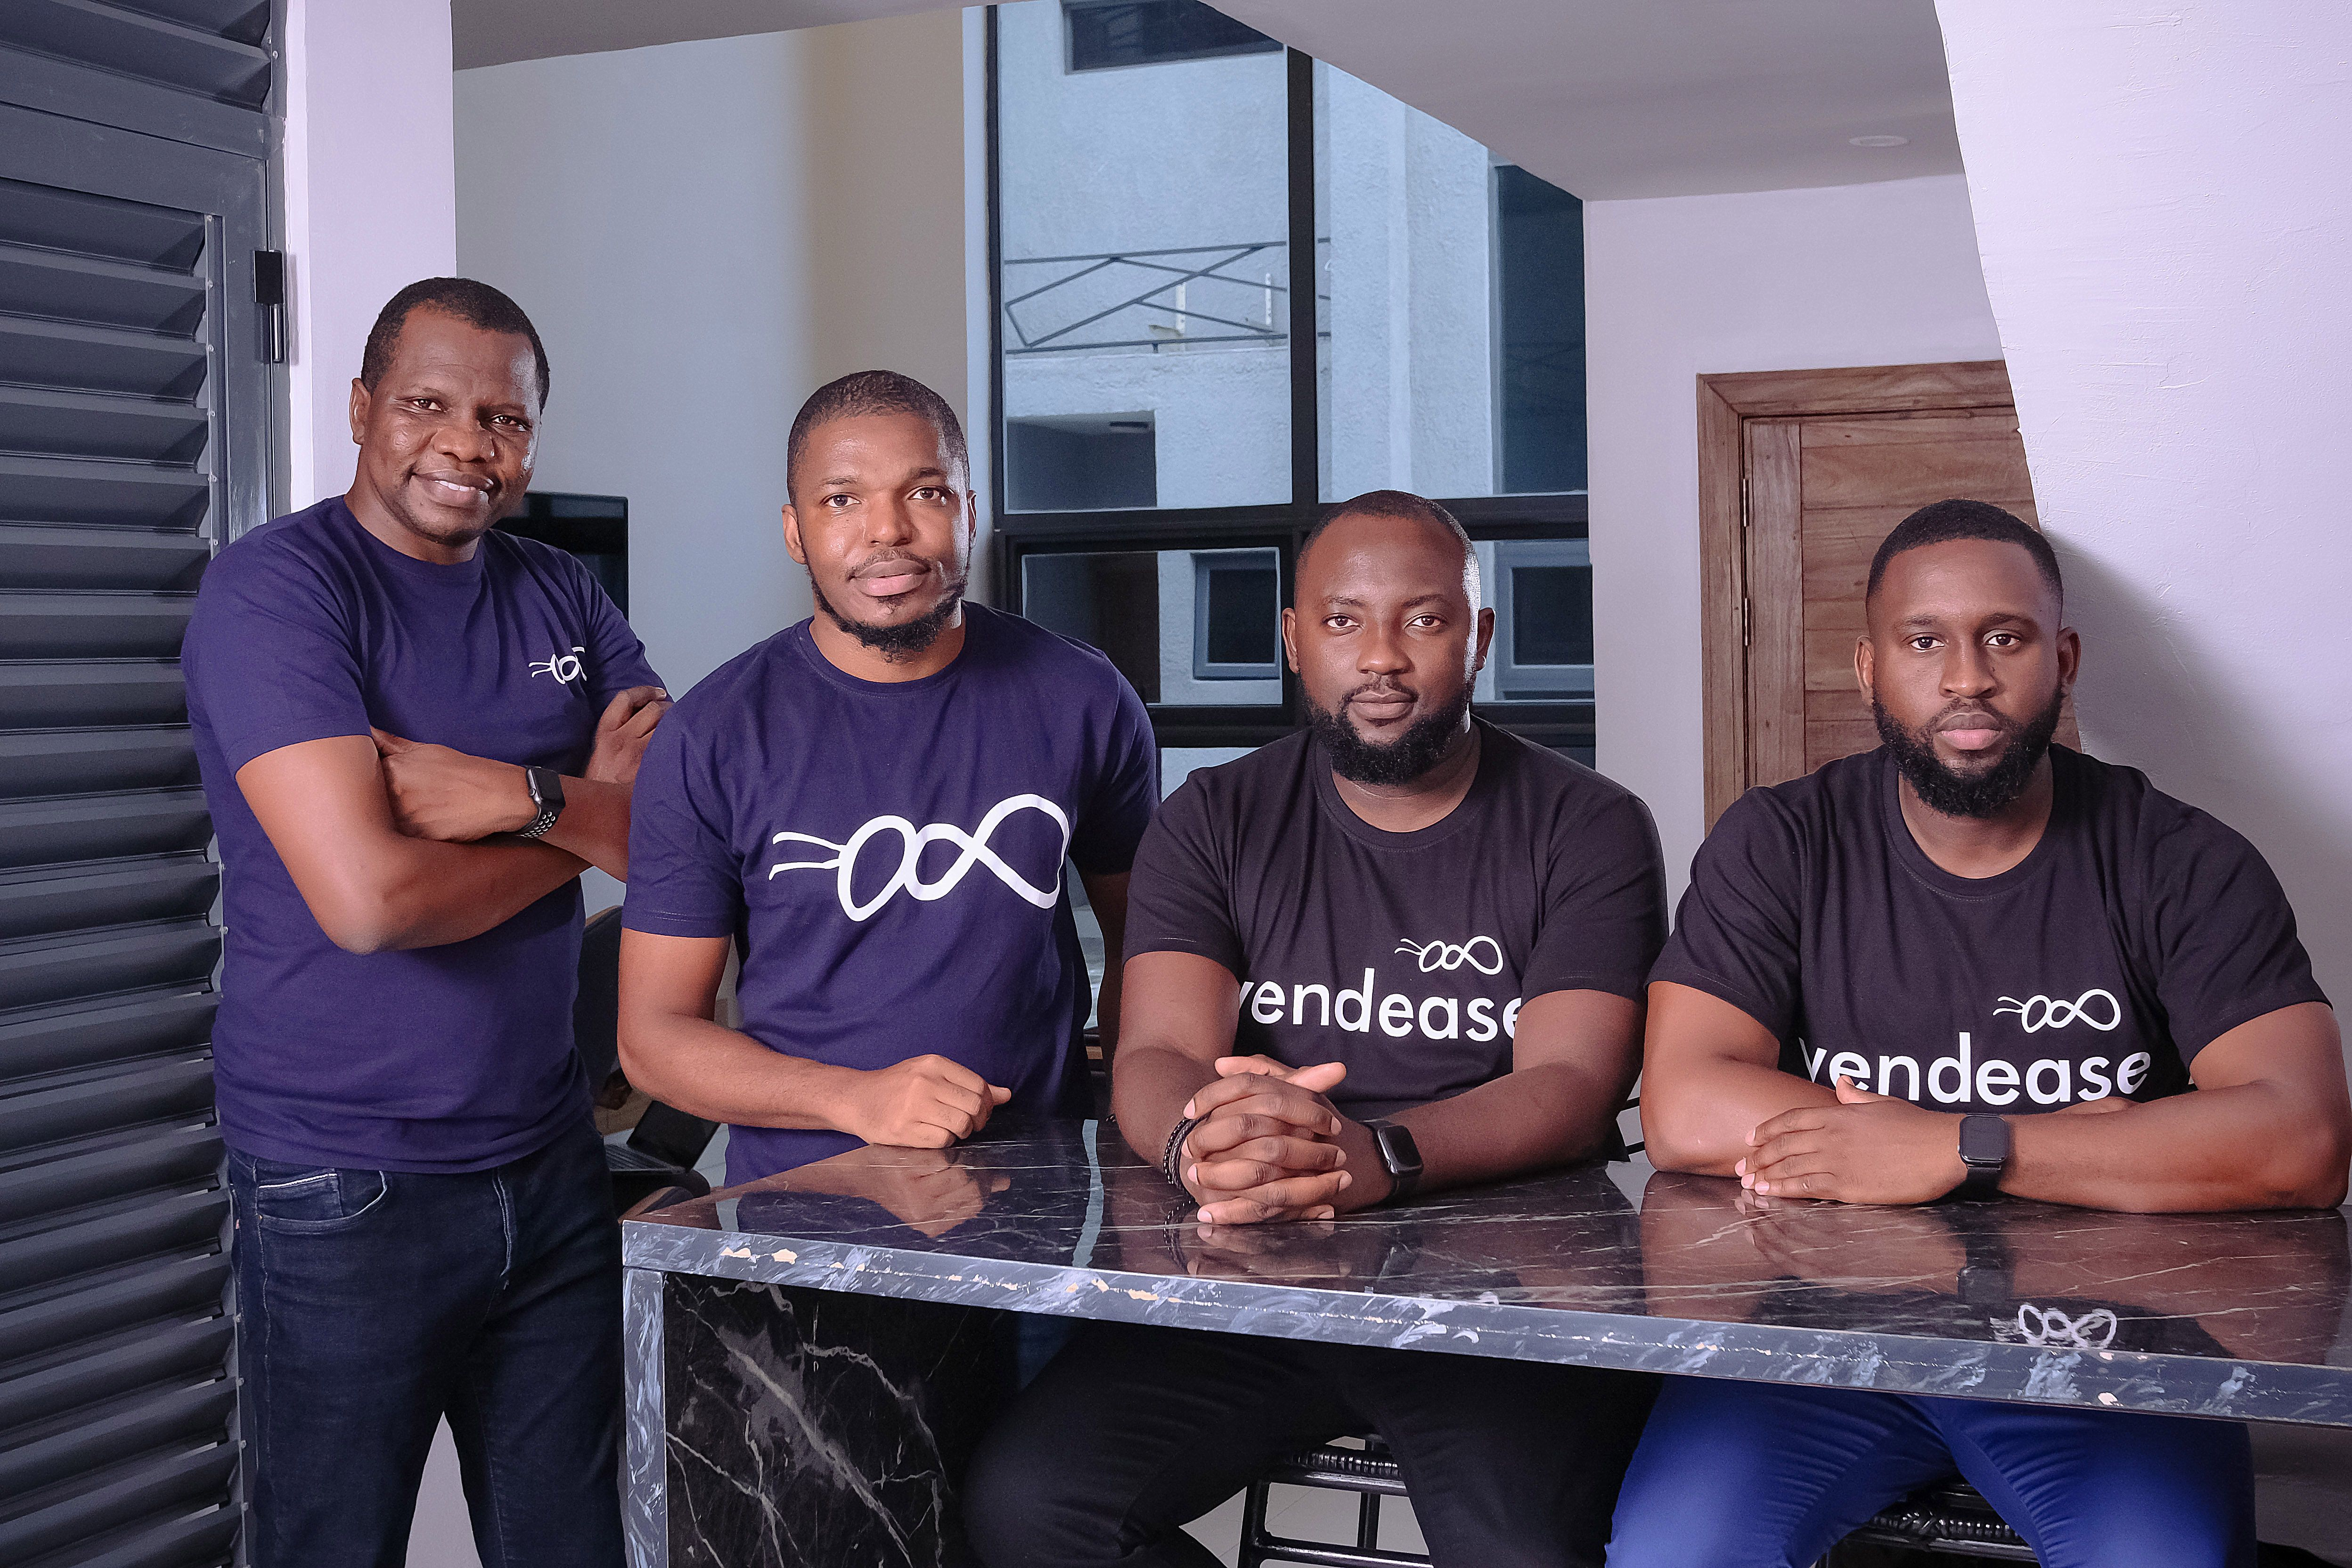 techcrunch.com - Tage Kene-Okafor - Vendease gets $3.2M to help hotels and restaurants buy food supplies in Africa